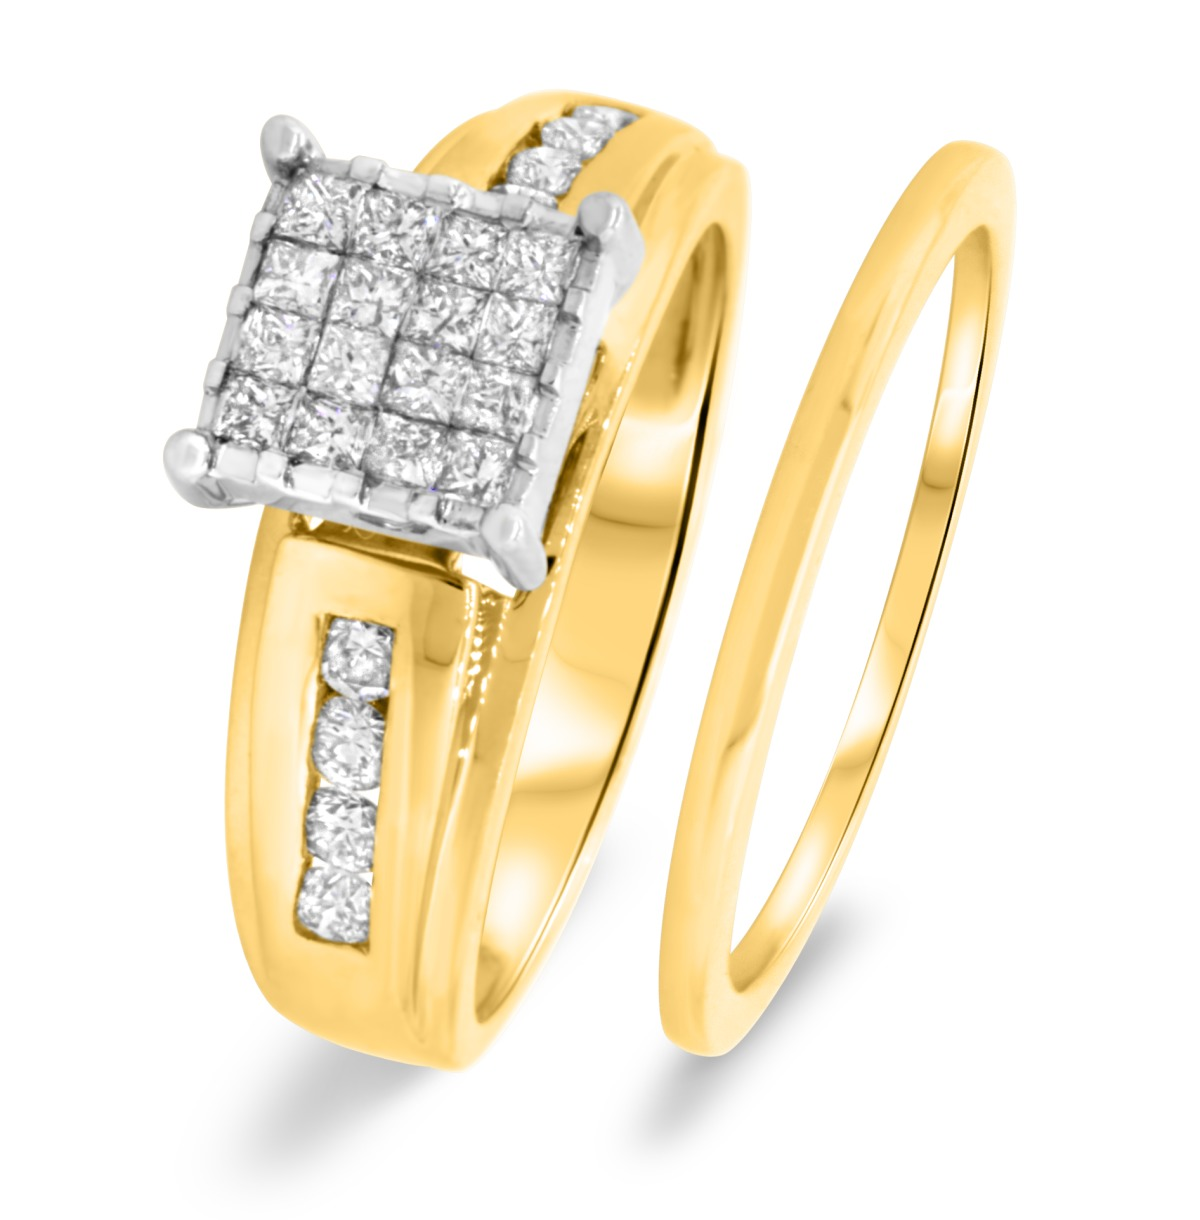 1 Carat Diamond Bridal Wedding Ring Set 14K Yellow Gold